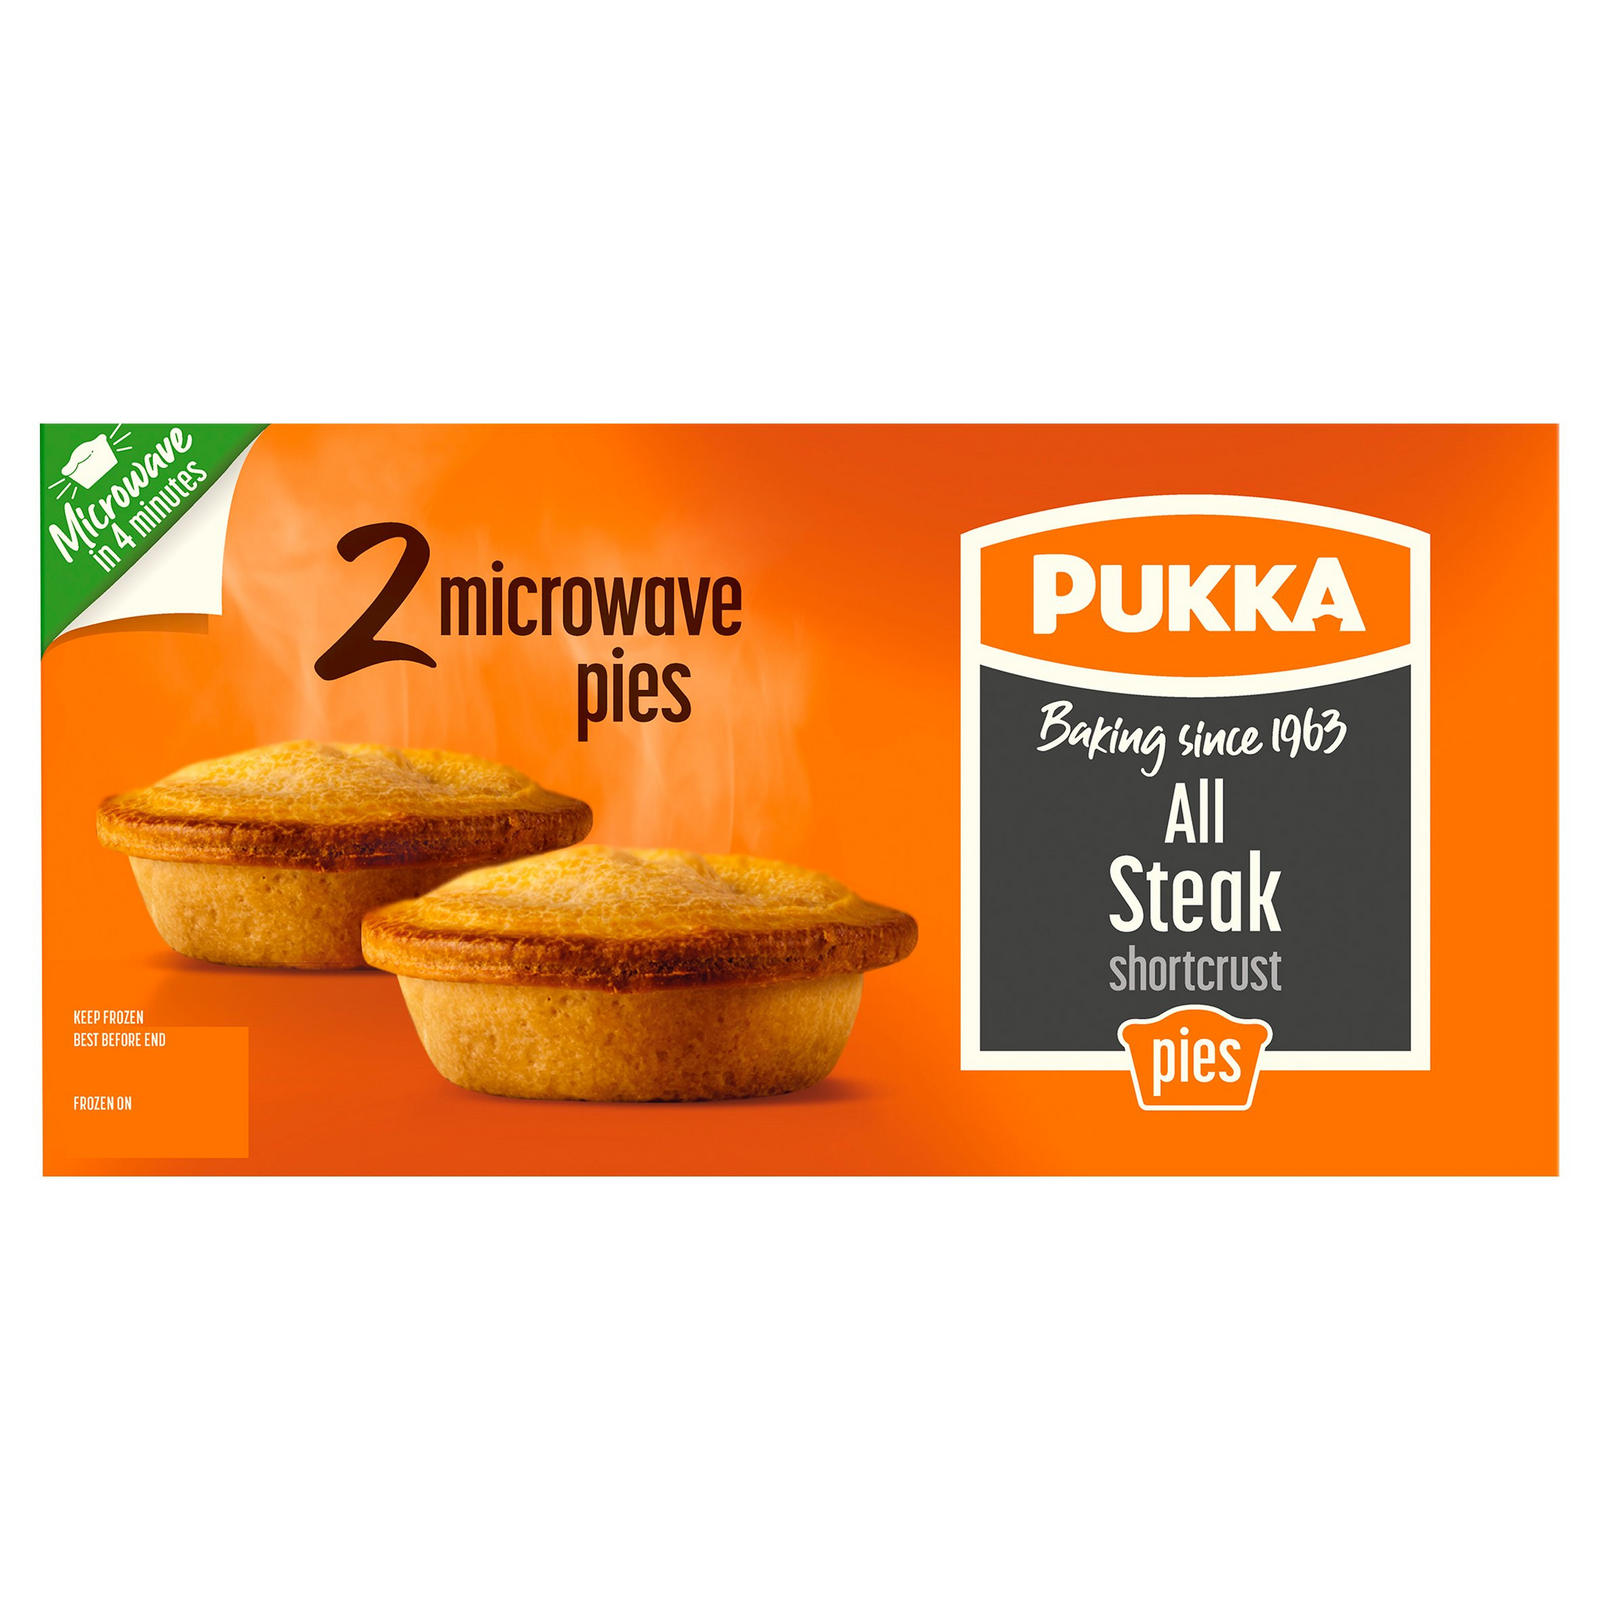 Pukka 2 All Steak Shortcrust Microwave Pies | Pies ...